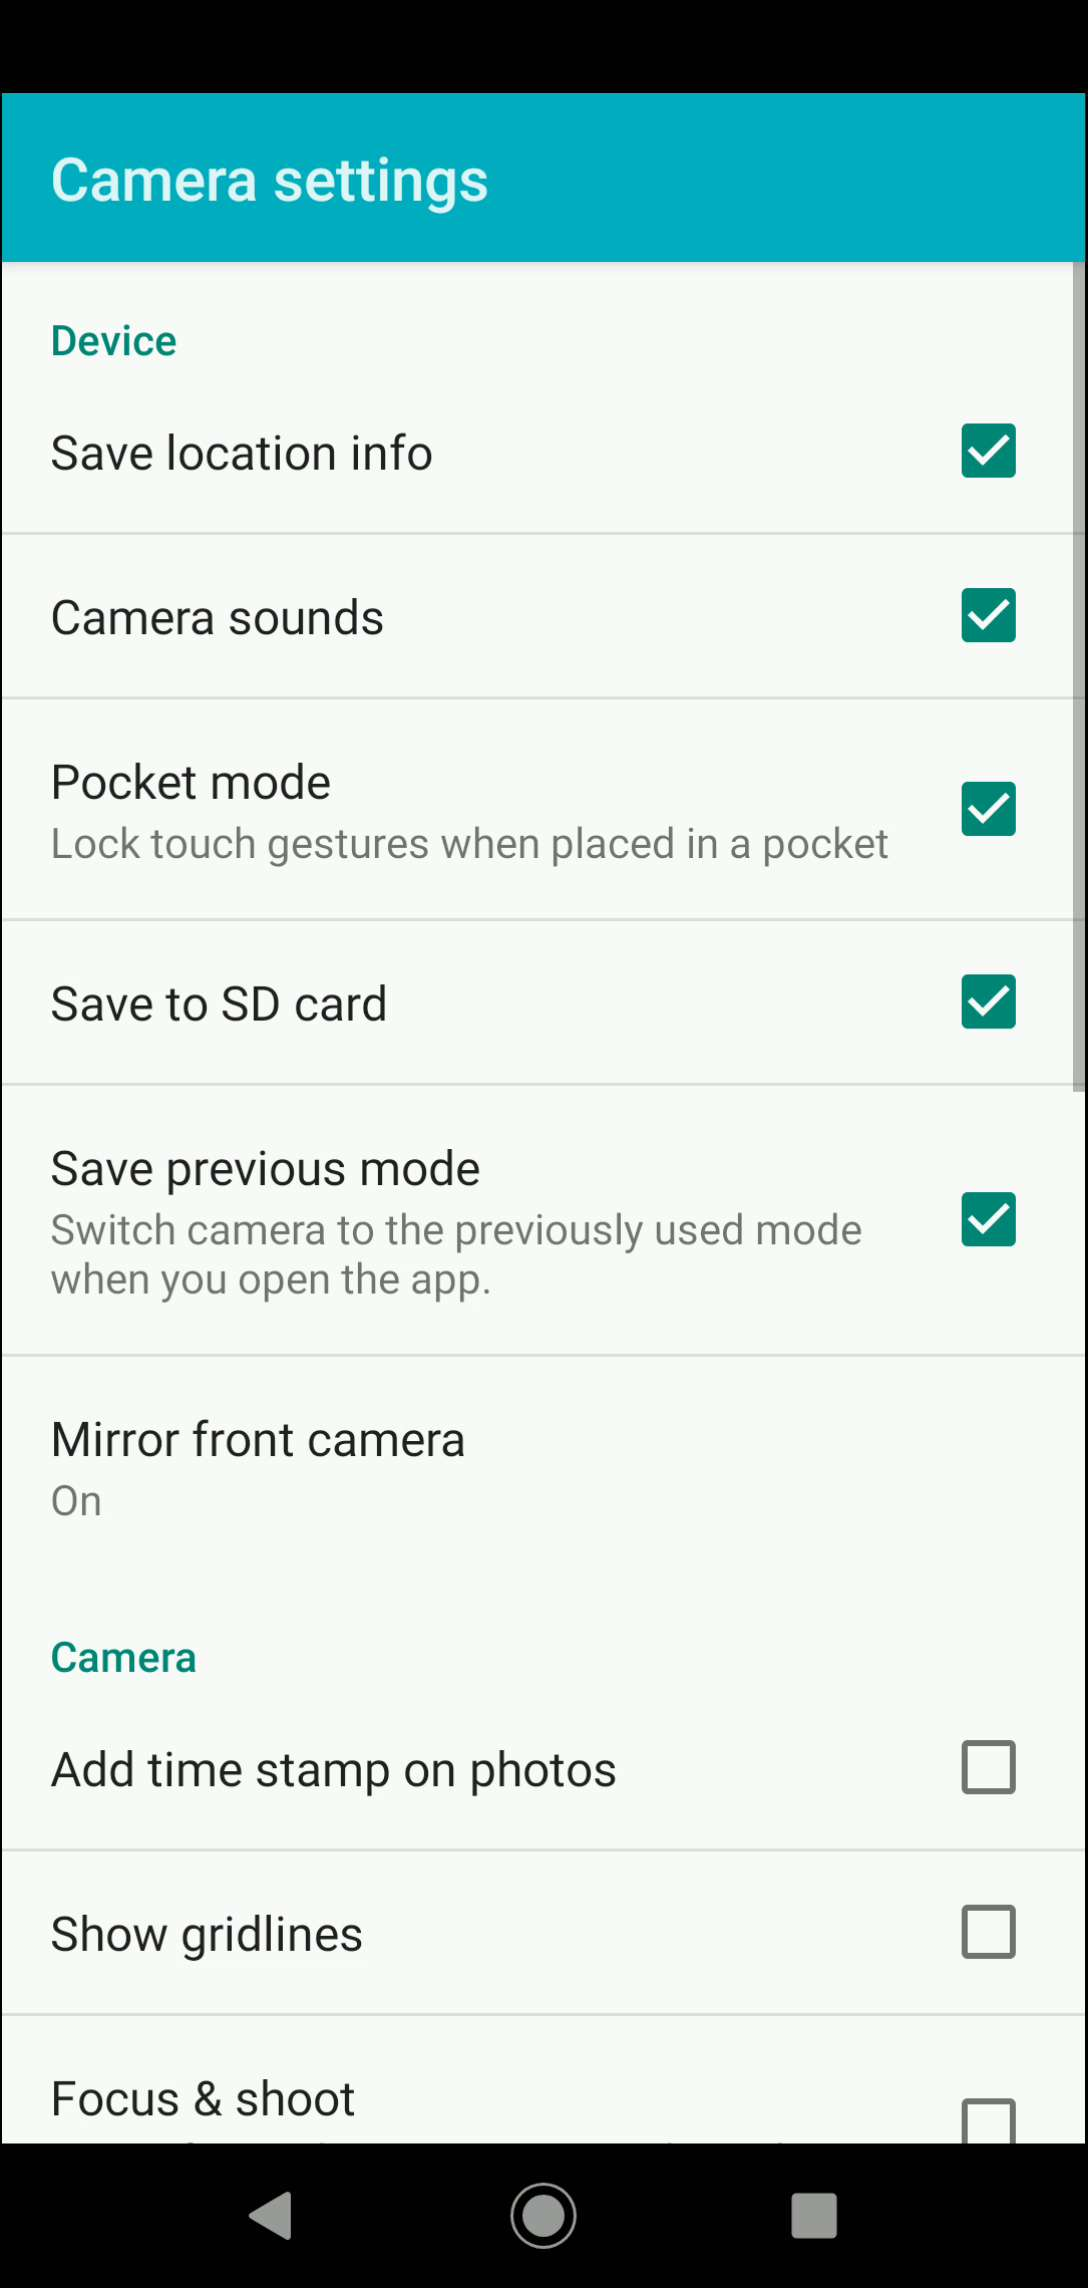 Step 4: Activate or deactivate Camera sounds